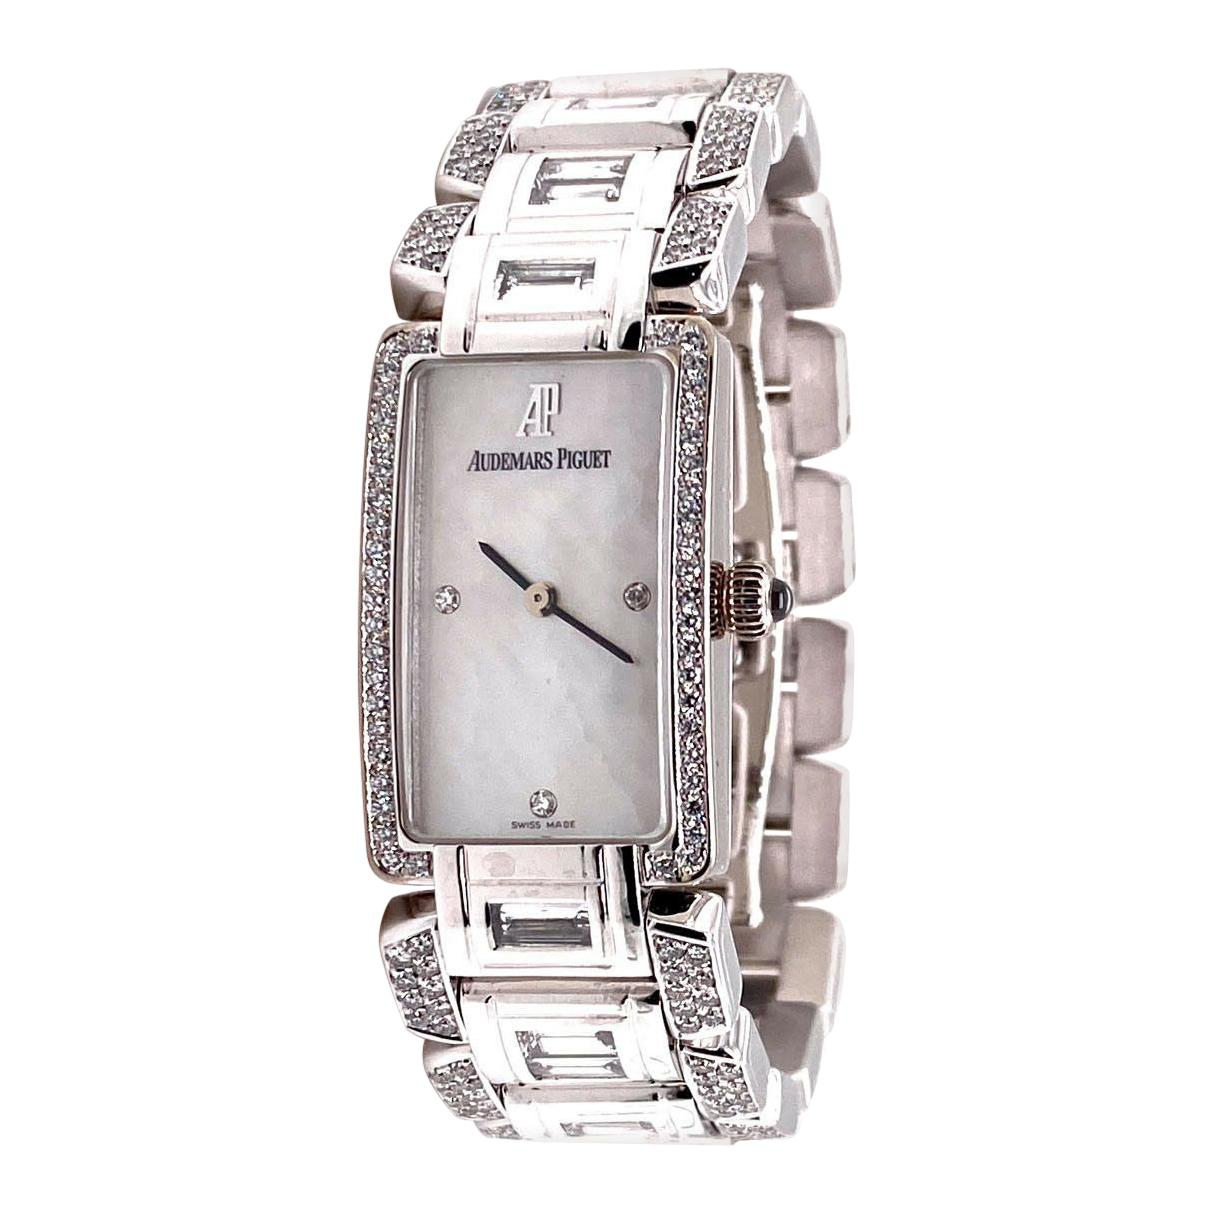 Audemars Piguet Classique 67525BC.ZZ.9163BC.01 18 Karat White Gold with Diamonds